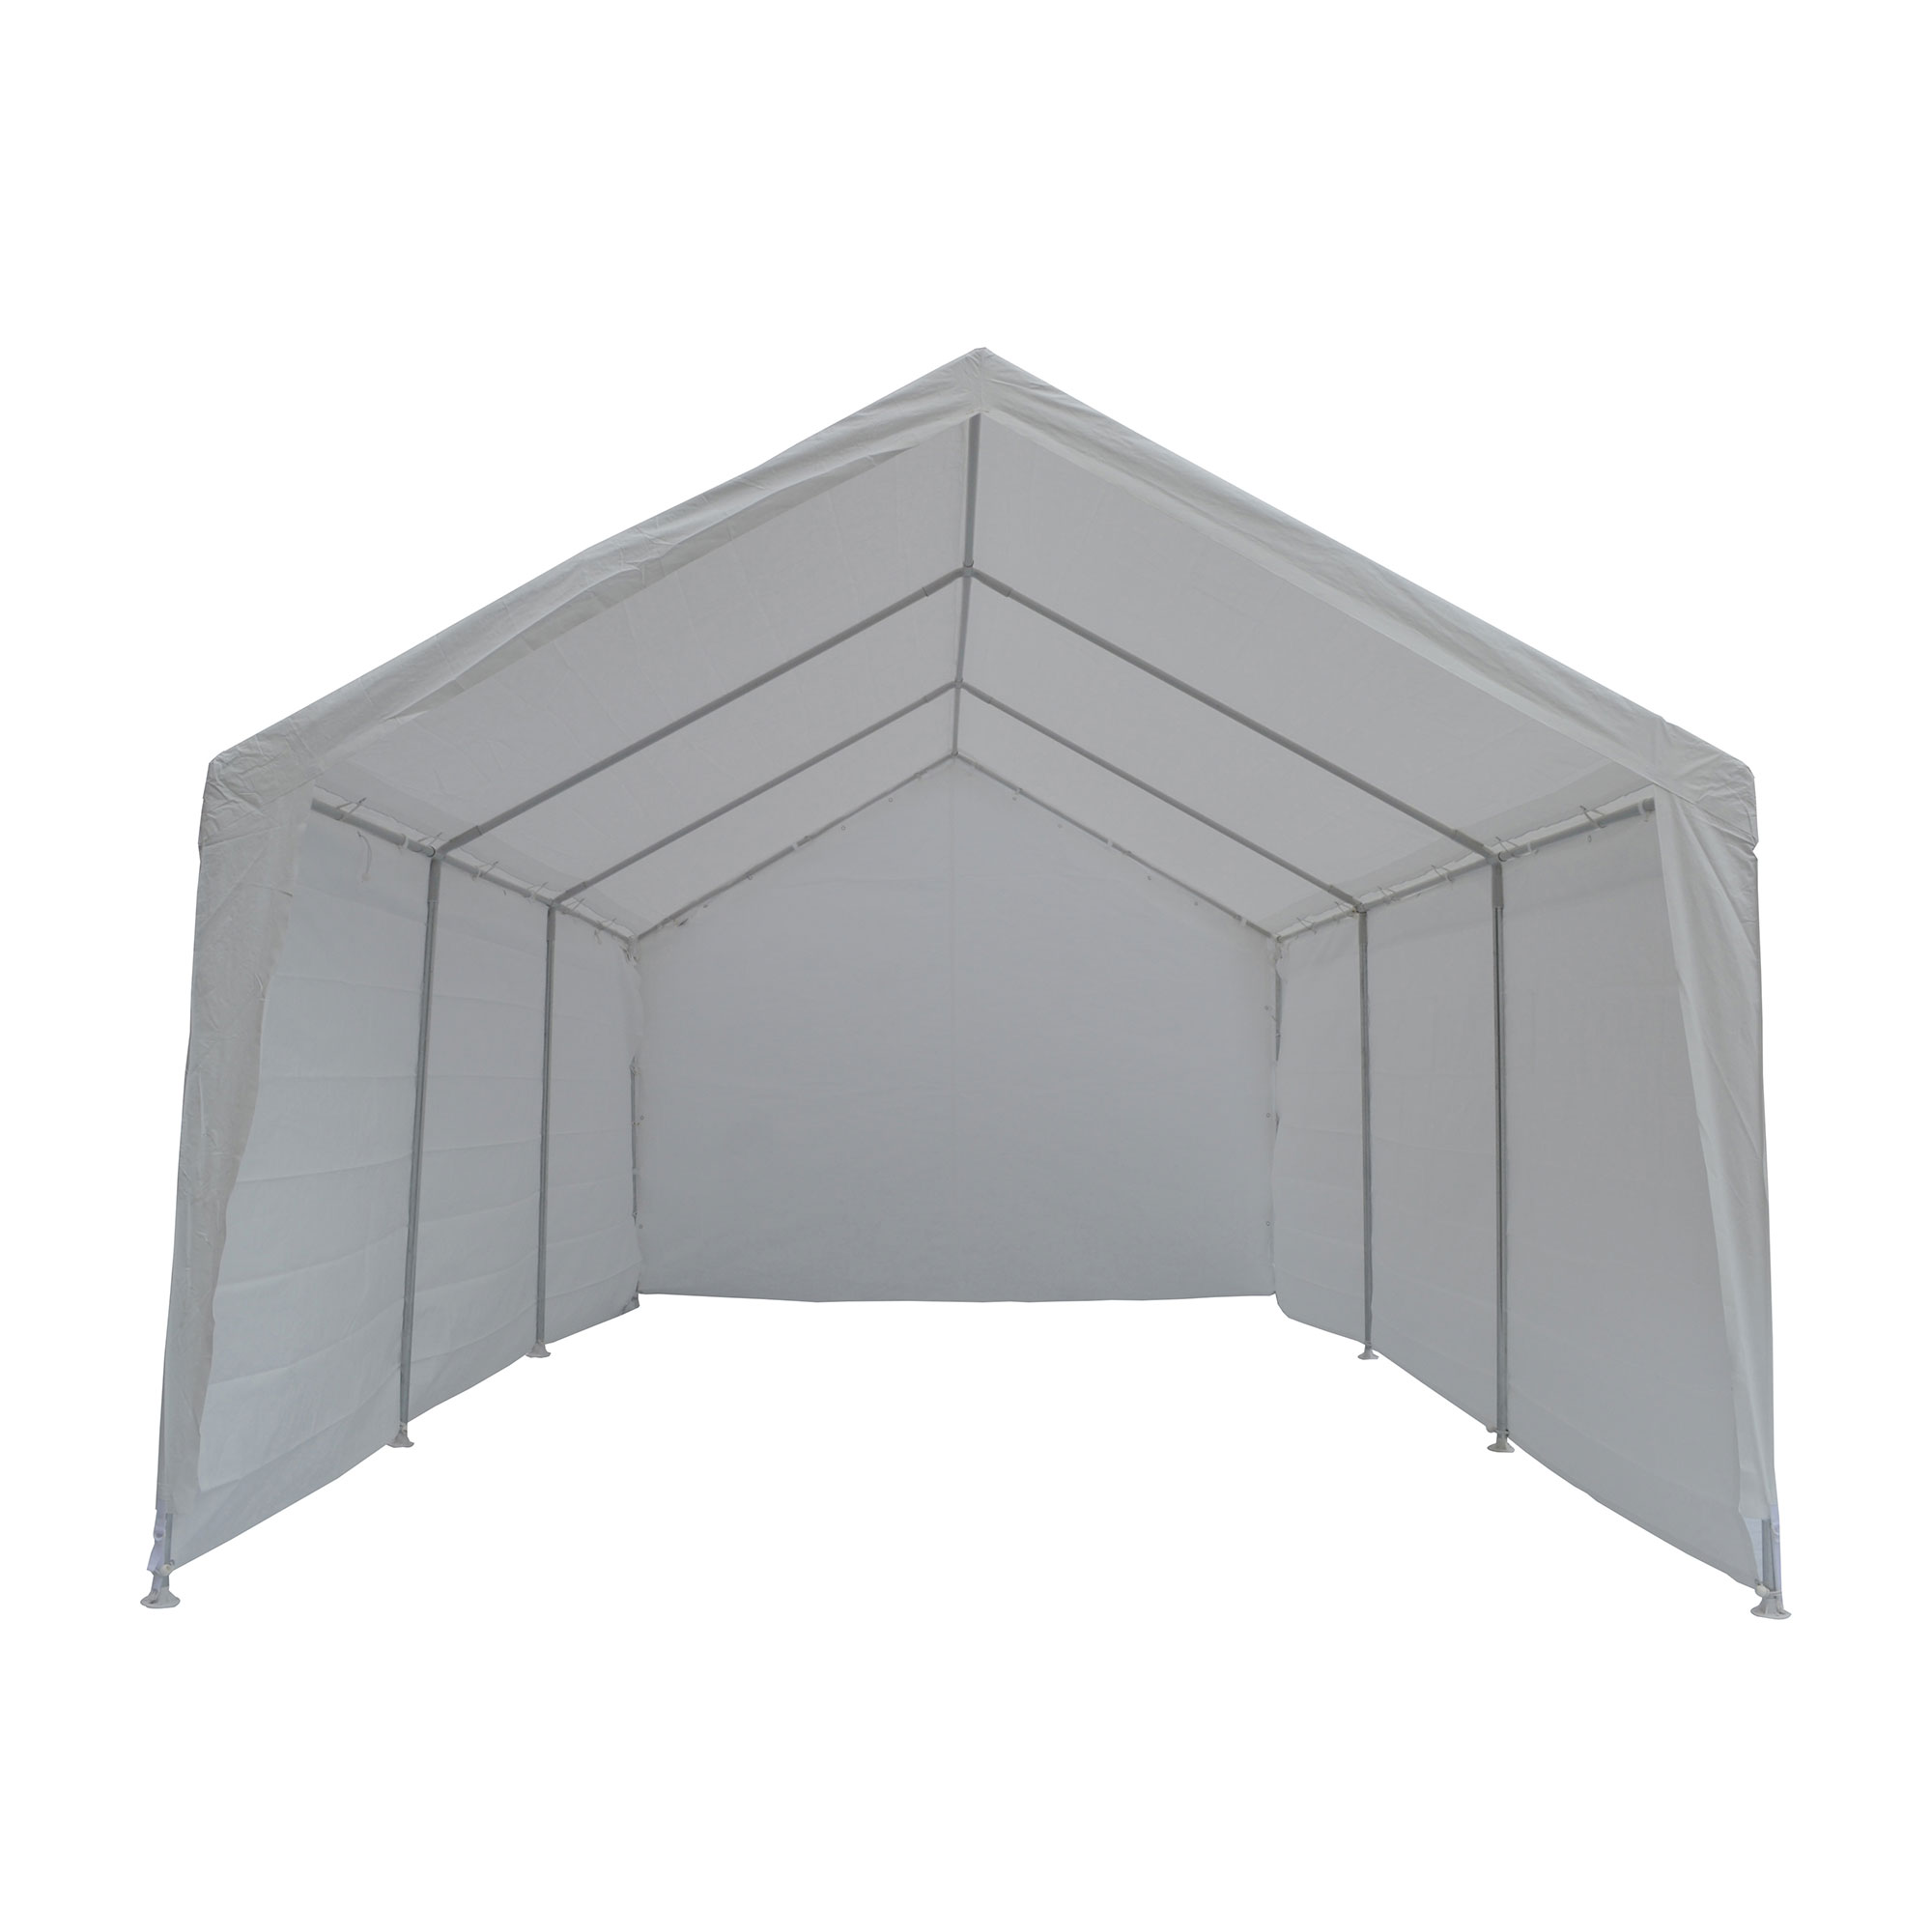 True Shelter 10' x 20' Car Canopy Gazebo Tent Cover 8 Legs Steel Frame Garage